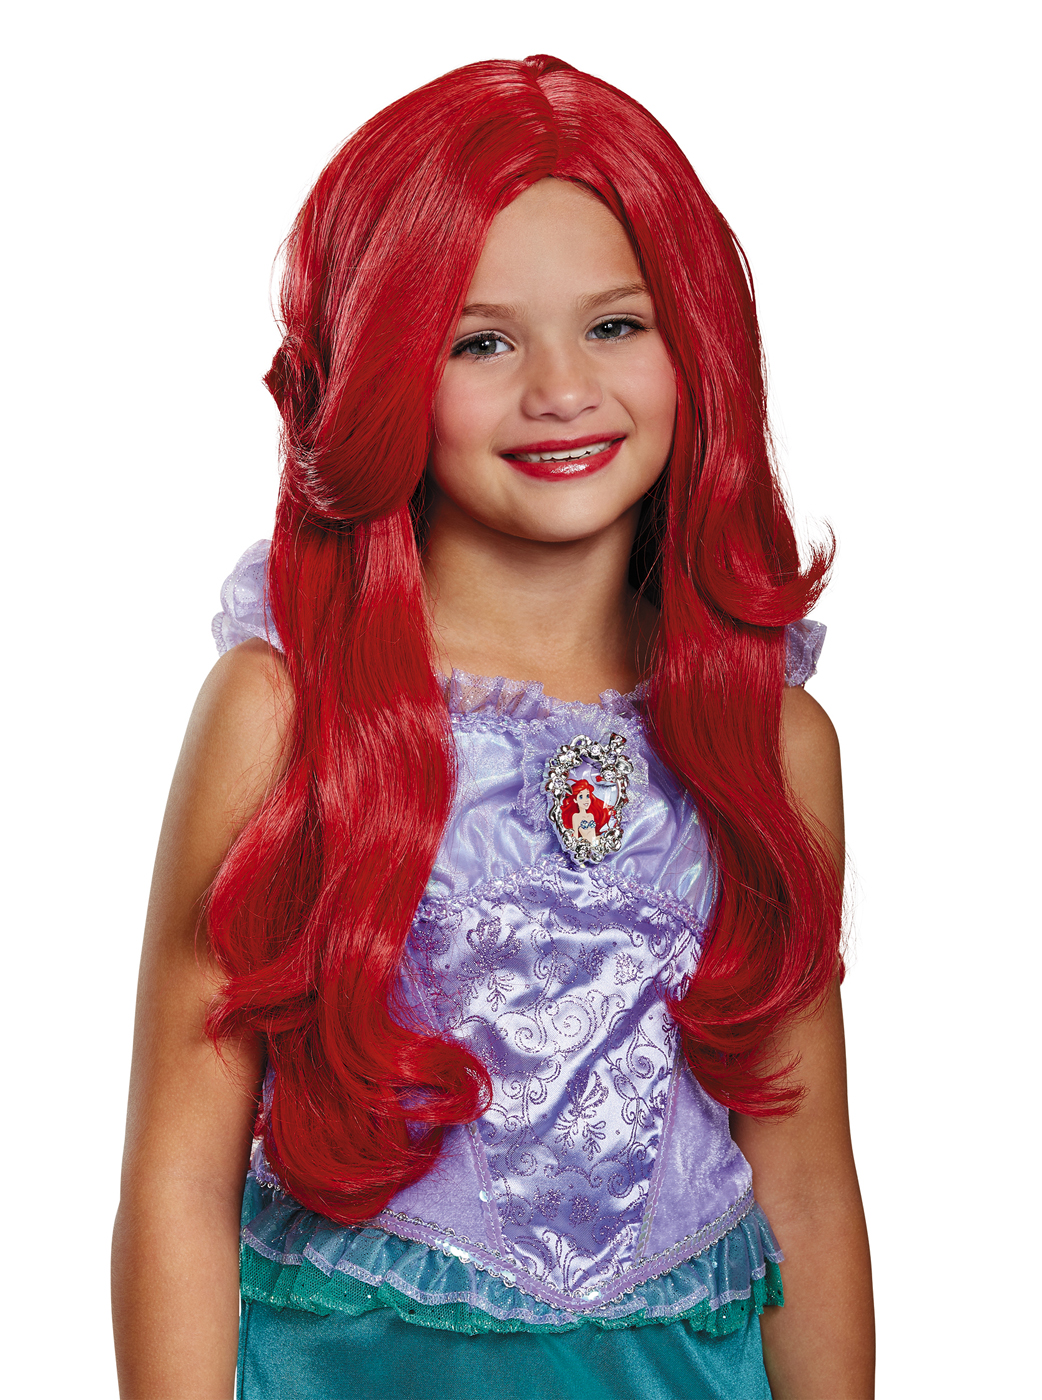 disney princess the little mermaid ariel child deluxe red long